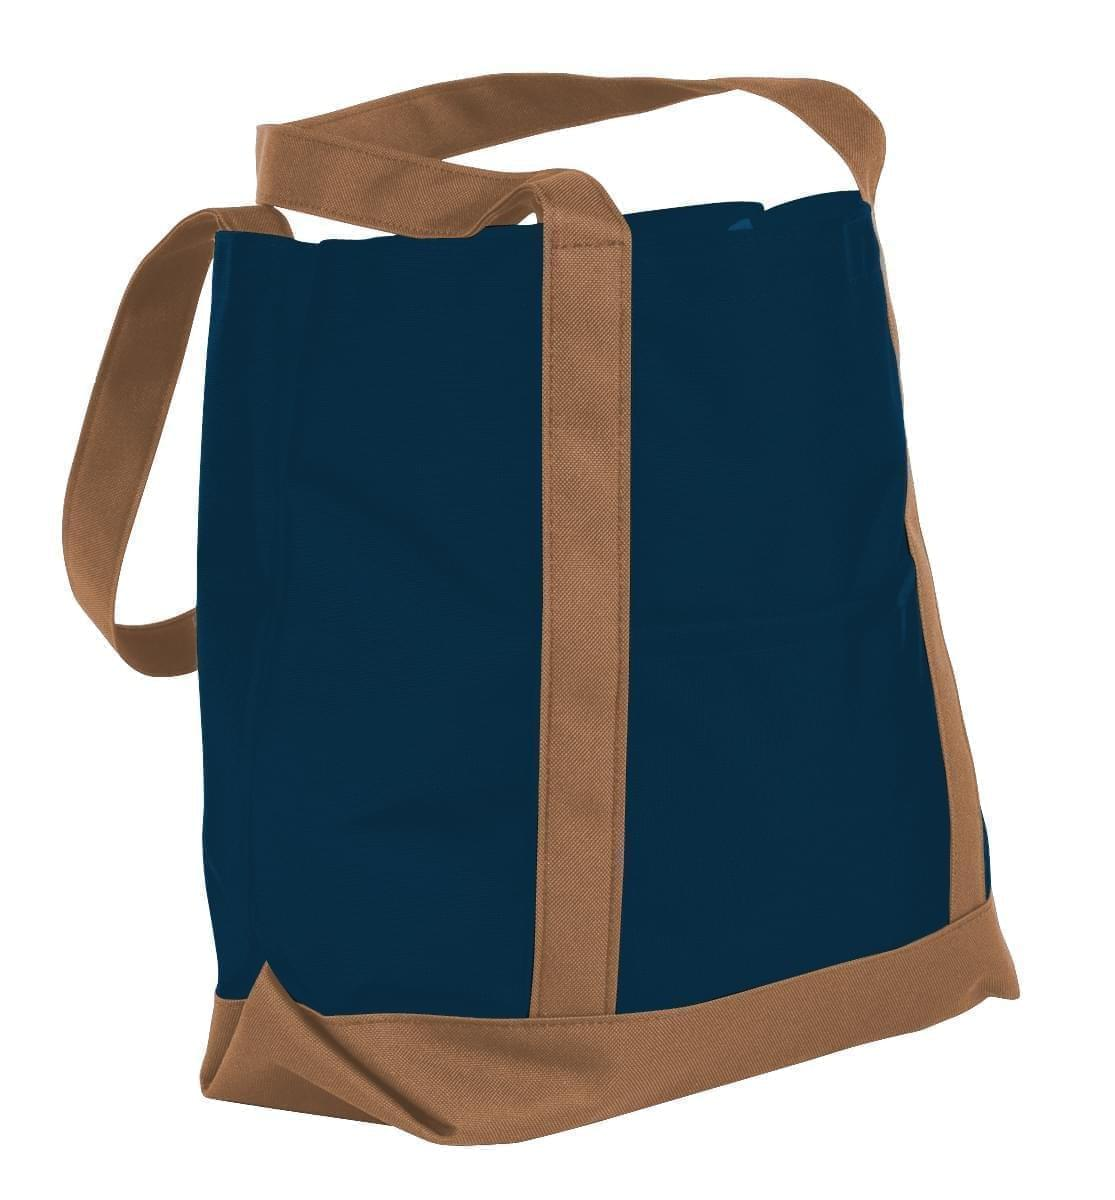 USA Made Canvas Fashion Tote Bags, Navy-Bronze, XAACL1UACO